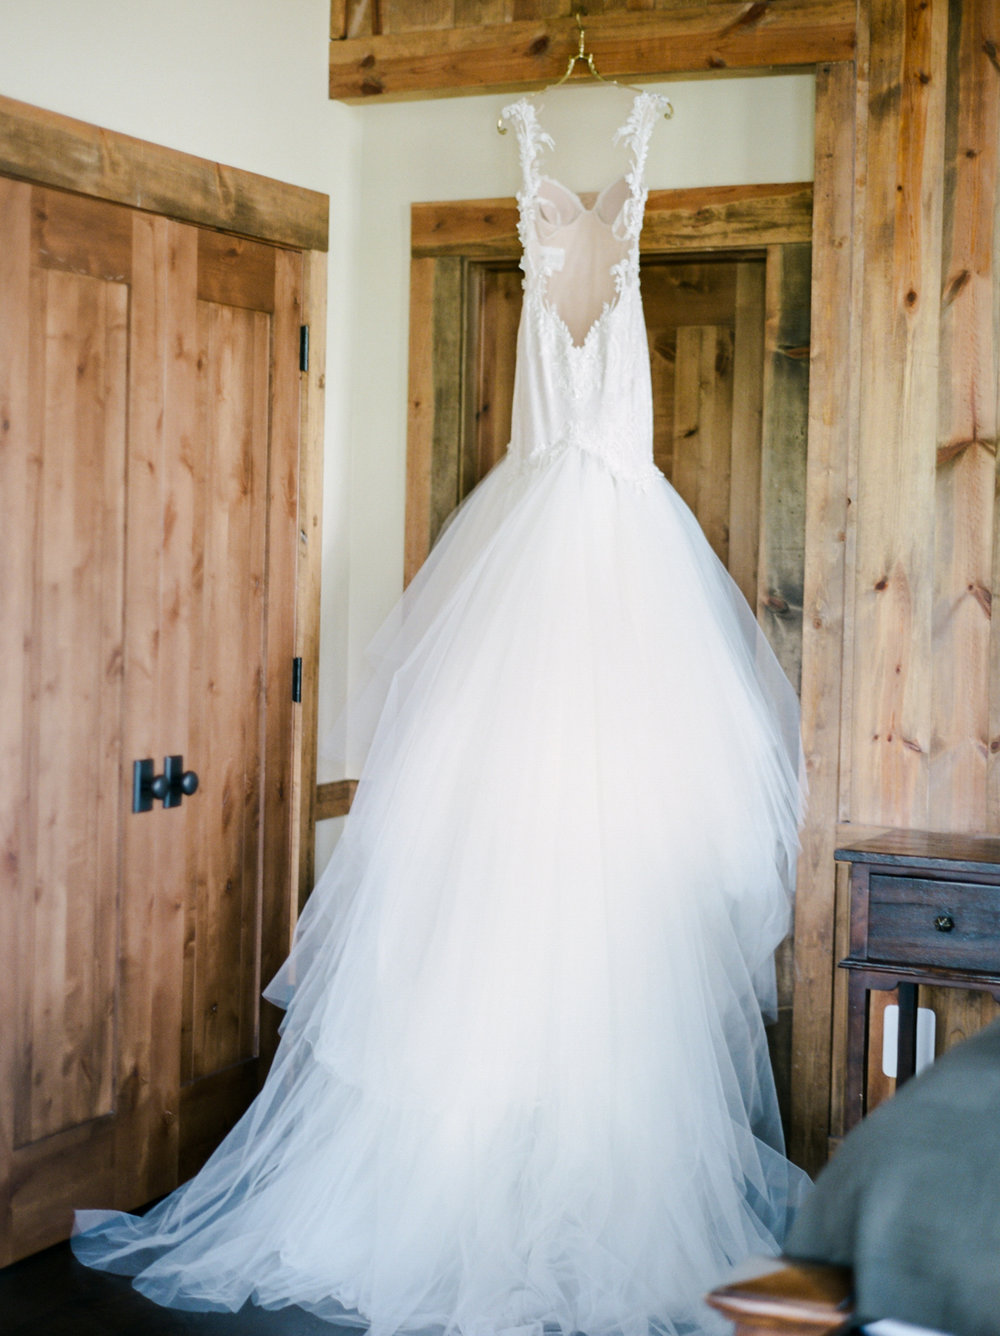 Little White Dress Bridal Shop,  Denver Bridal Gown Shop, Denver Wedding Dress, Denver Wedding Alterations, Galia Lahav Colorado, Devil's Thumb Ranch, Denver Galia Lahav